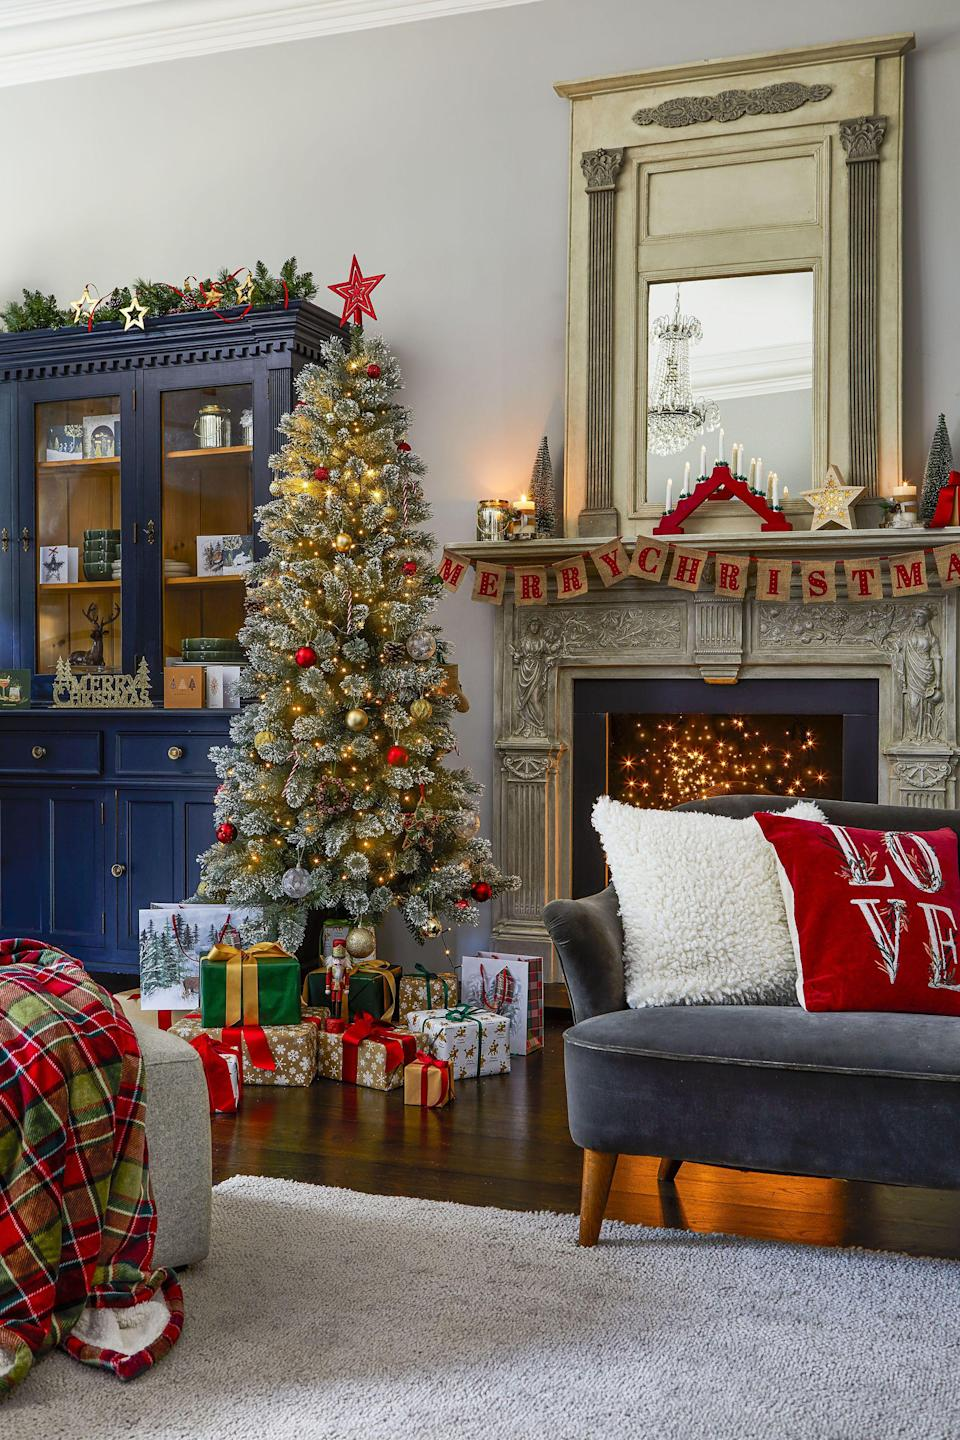 """<p><strong>Tesco has unveiled five festive homeware trends — Nordic Blues, Forest Greens, Powdered Stone, Playful Brights and F&F Tableware — to snap up in time for <strong><a href=""""https://www.housebeautiful.com/uk/christmas/"""" rel=""""nofollow noopener"""" target=""""_blank"""" data-ylk=""""slk:Christmas"""" class=""""link rapid-noclick-resp"""">Christmas</a> 2021. </strong></strong></p><p>From stylish silver baubles to classic tartan, there are tons of timeless products to buy now and love for Christmases to come. Available to purchase from Monday 1st November, it's never too early to start compiling your wish list. </p><p>'The evolution of our Christmas collections is something that's really important to us,' says Emma Parry, Head of Seasonal at <a href=""""https://go.redirectingat.com?id=127X1599956&url=https%3A%2F%2Fwww.tesco.com%2F&sref=https%3A%2F%2Fwww.housebeautiful.com%2Fuk%2Flifestyle%2Fshopping%2Fg37076170%2Ftesco-christmas-homeware%2F"""" rel=""""nofollow noopener"""" target=""""_blank"""" data-ylk=""""slk:Tesco"""" class=""""link rapid-noclick-resp"""">Tesco</a>. 'We want our customers to be able to come in year after year and buy just a few new pieces that will effortlessly pair with existing decorations.'</p><p>Take a look at some of our favourite items... </p>"""